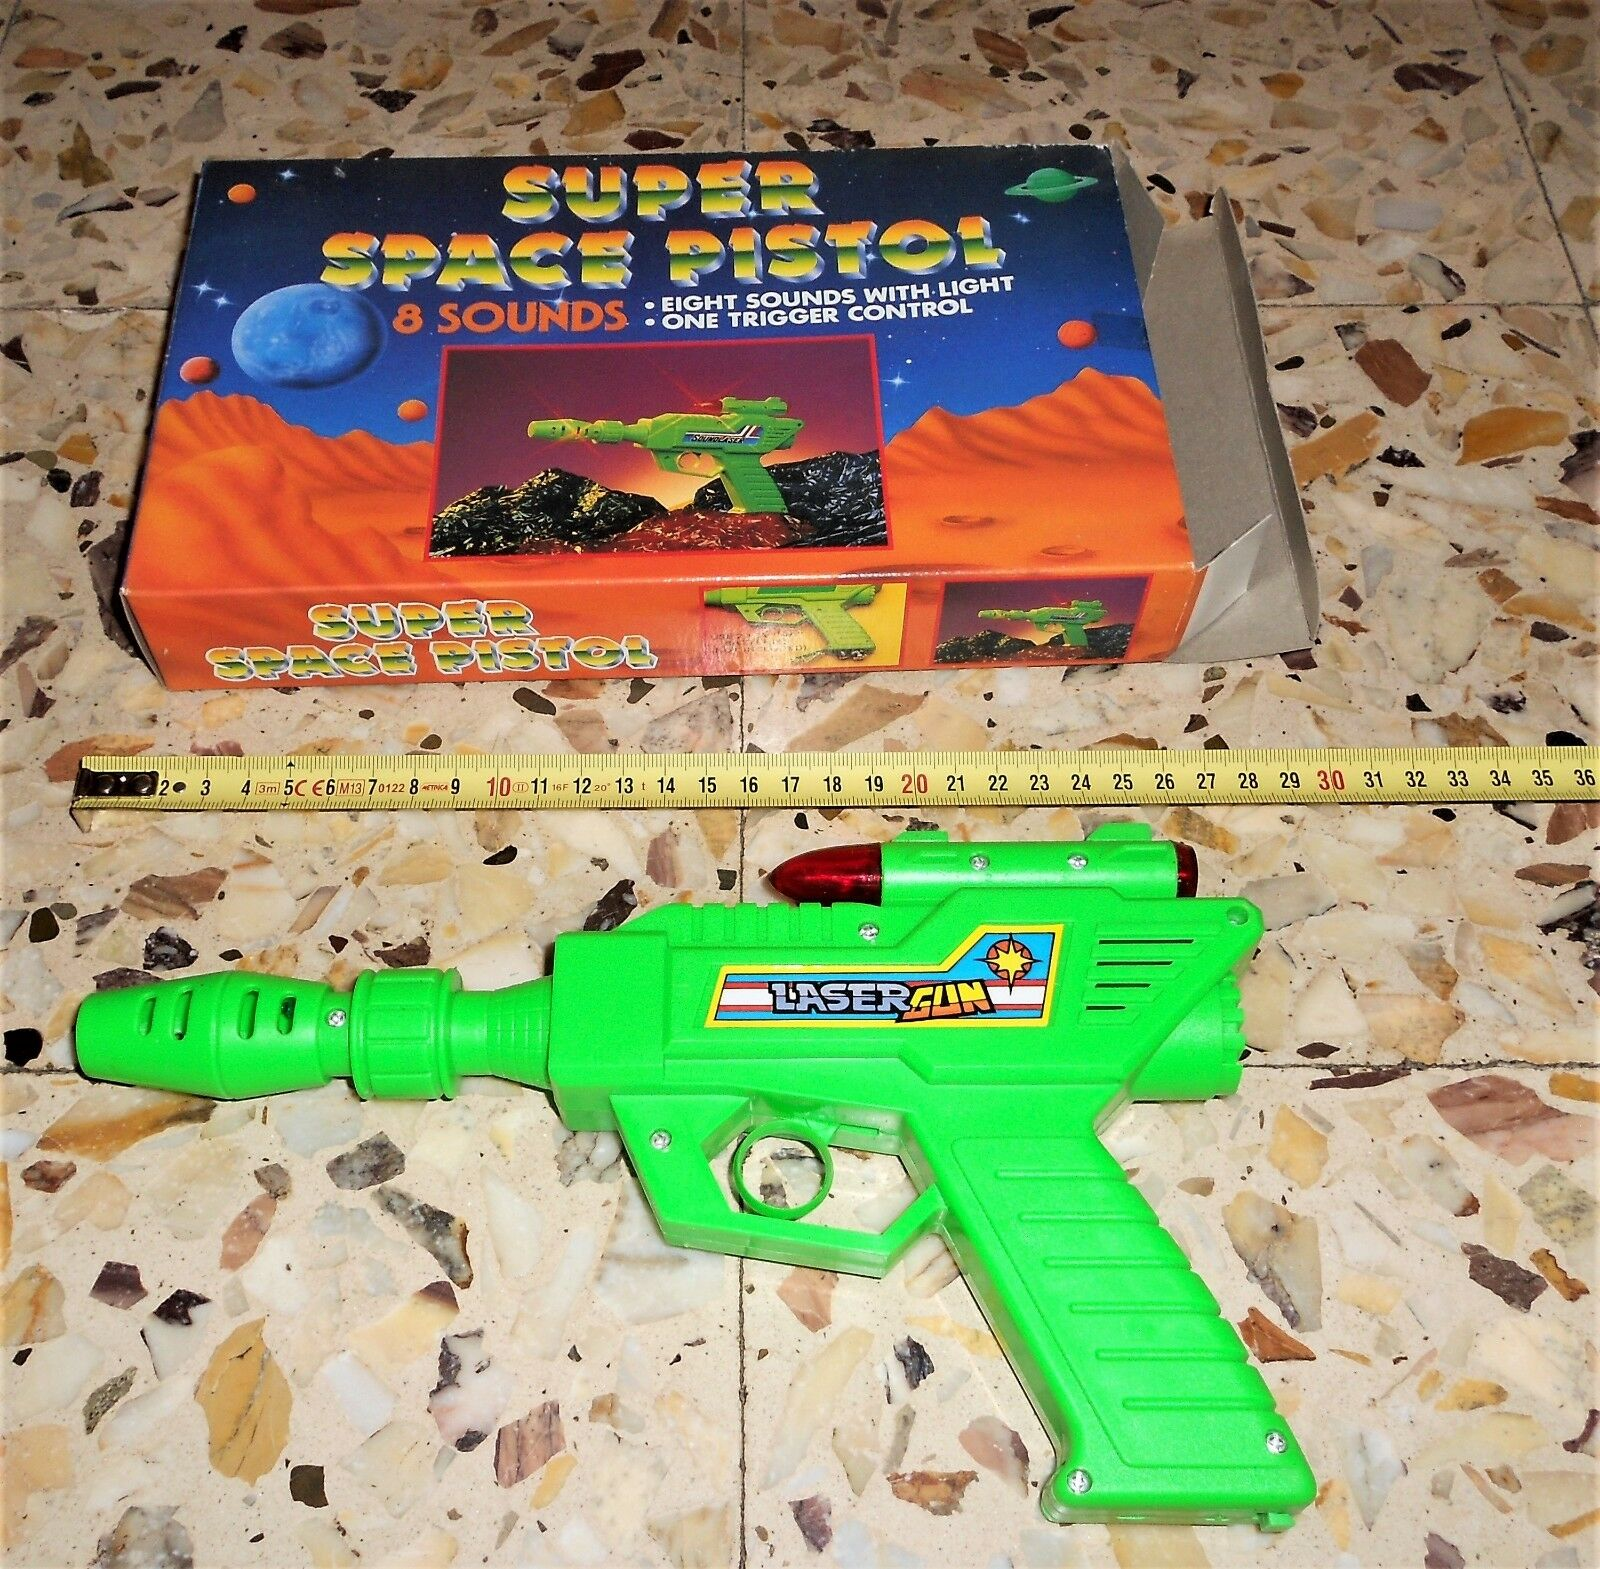 TIN TOY SPACE PISTOL LASER GUN  8 SOUND WITH LIGHT PLASTIC MIB VINTAGE